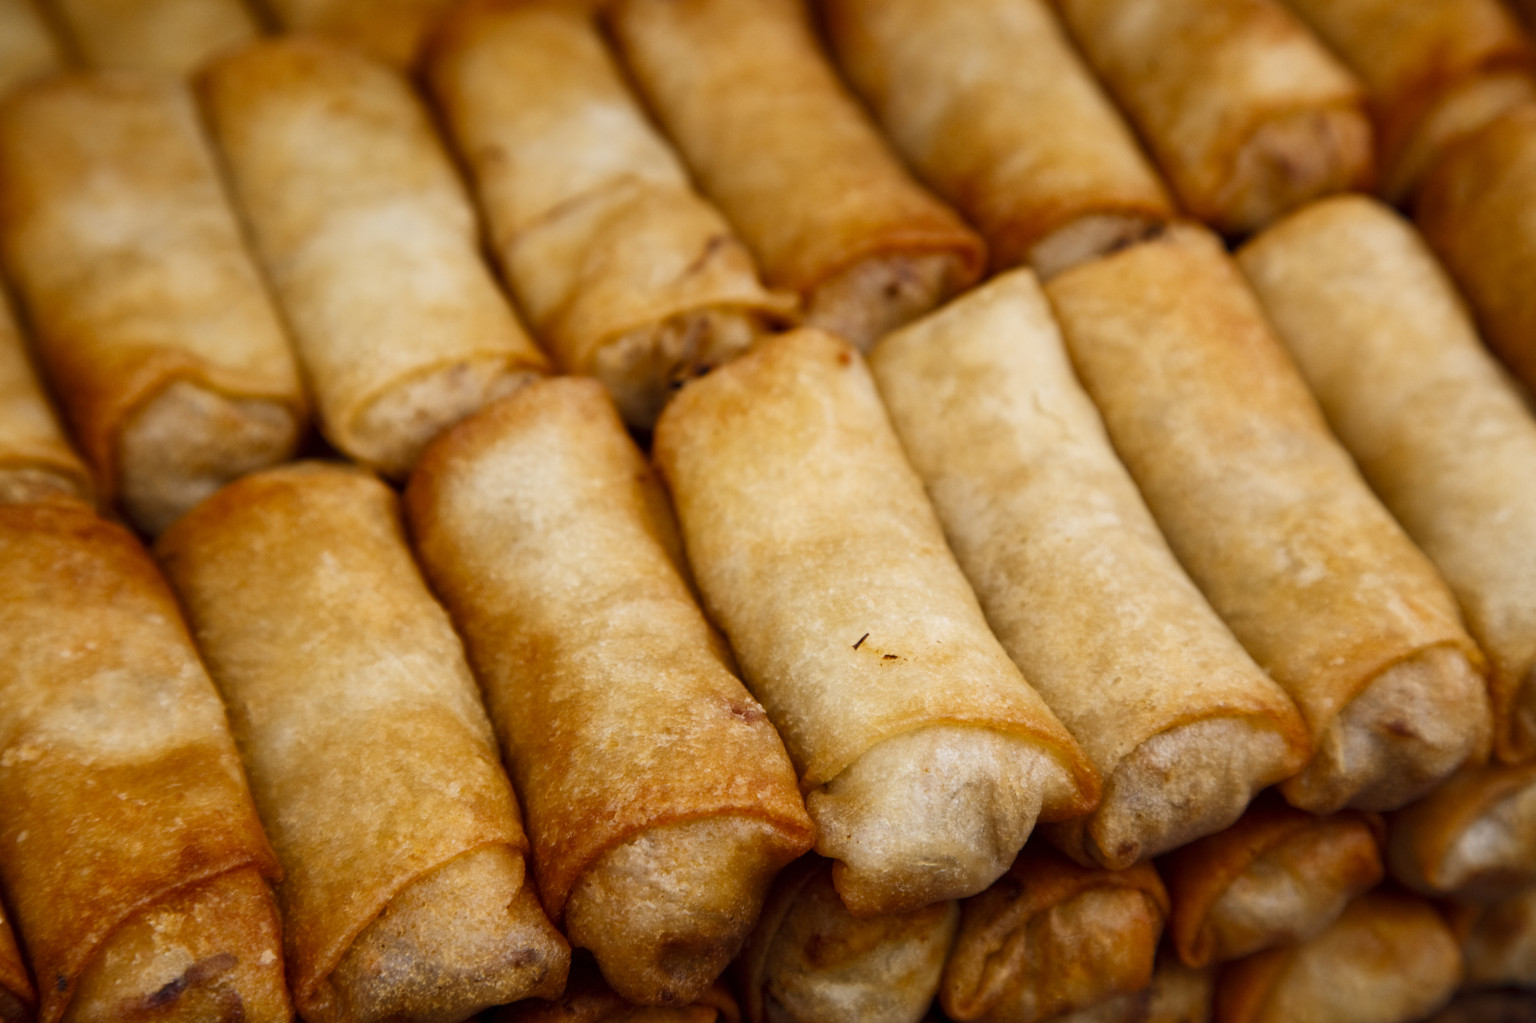 Immigration Officer Charged With Taking Egg Rolls As Bribes